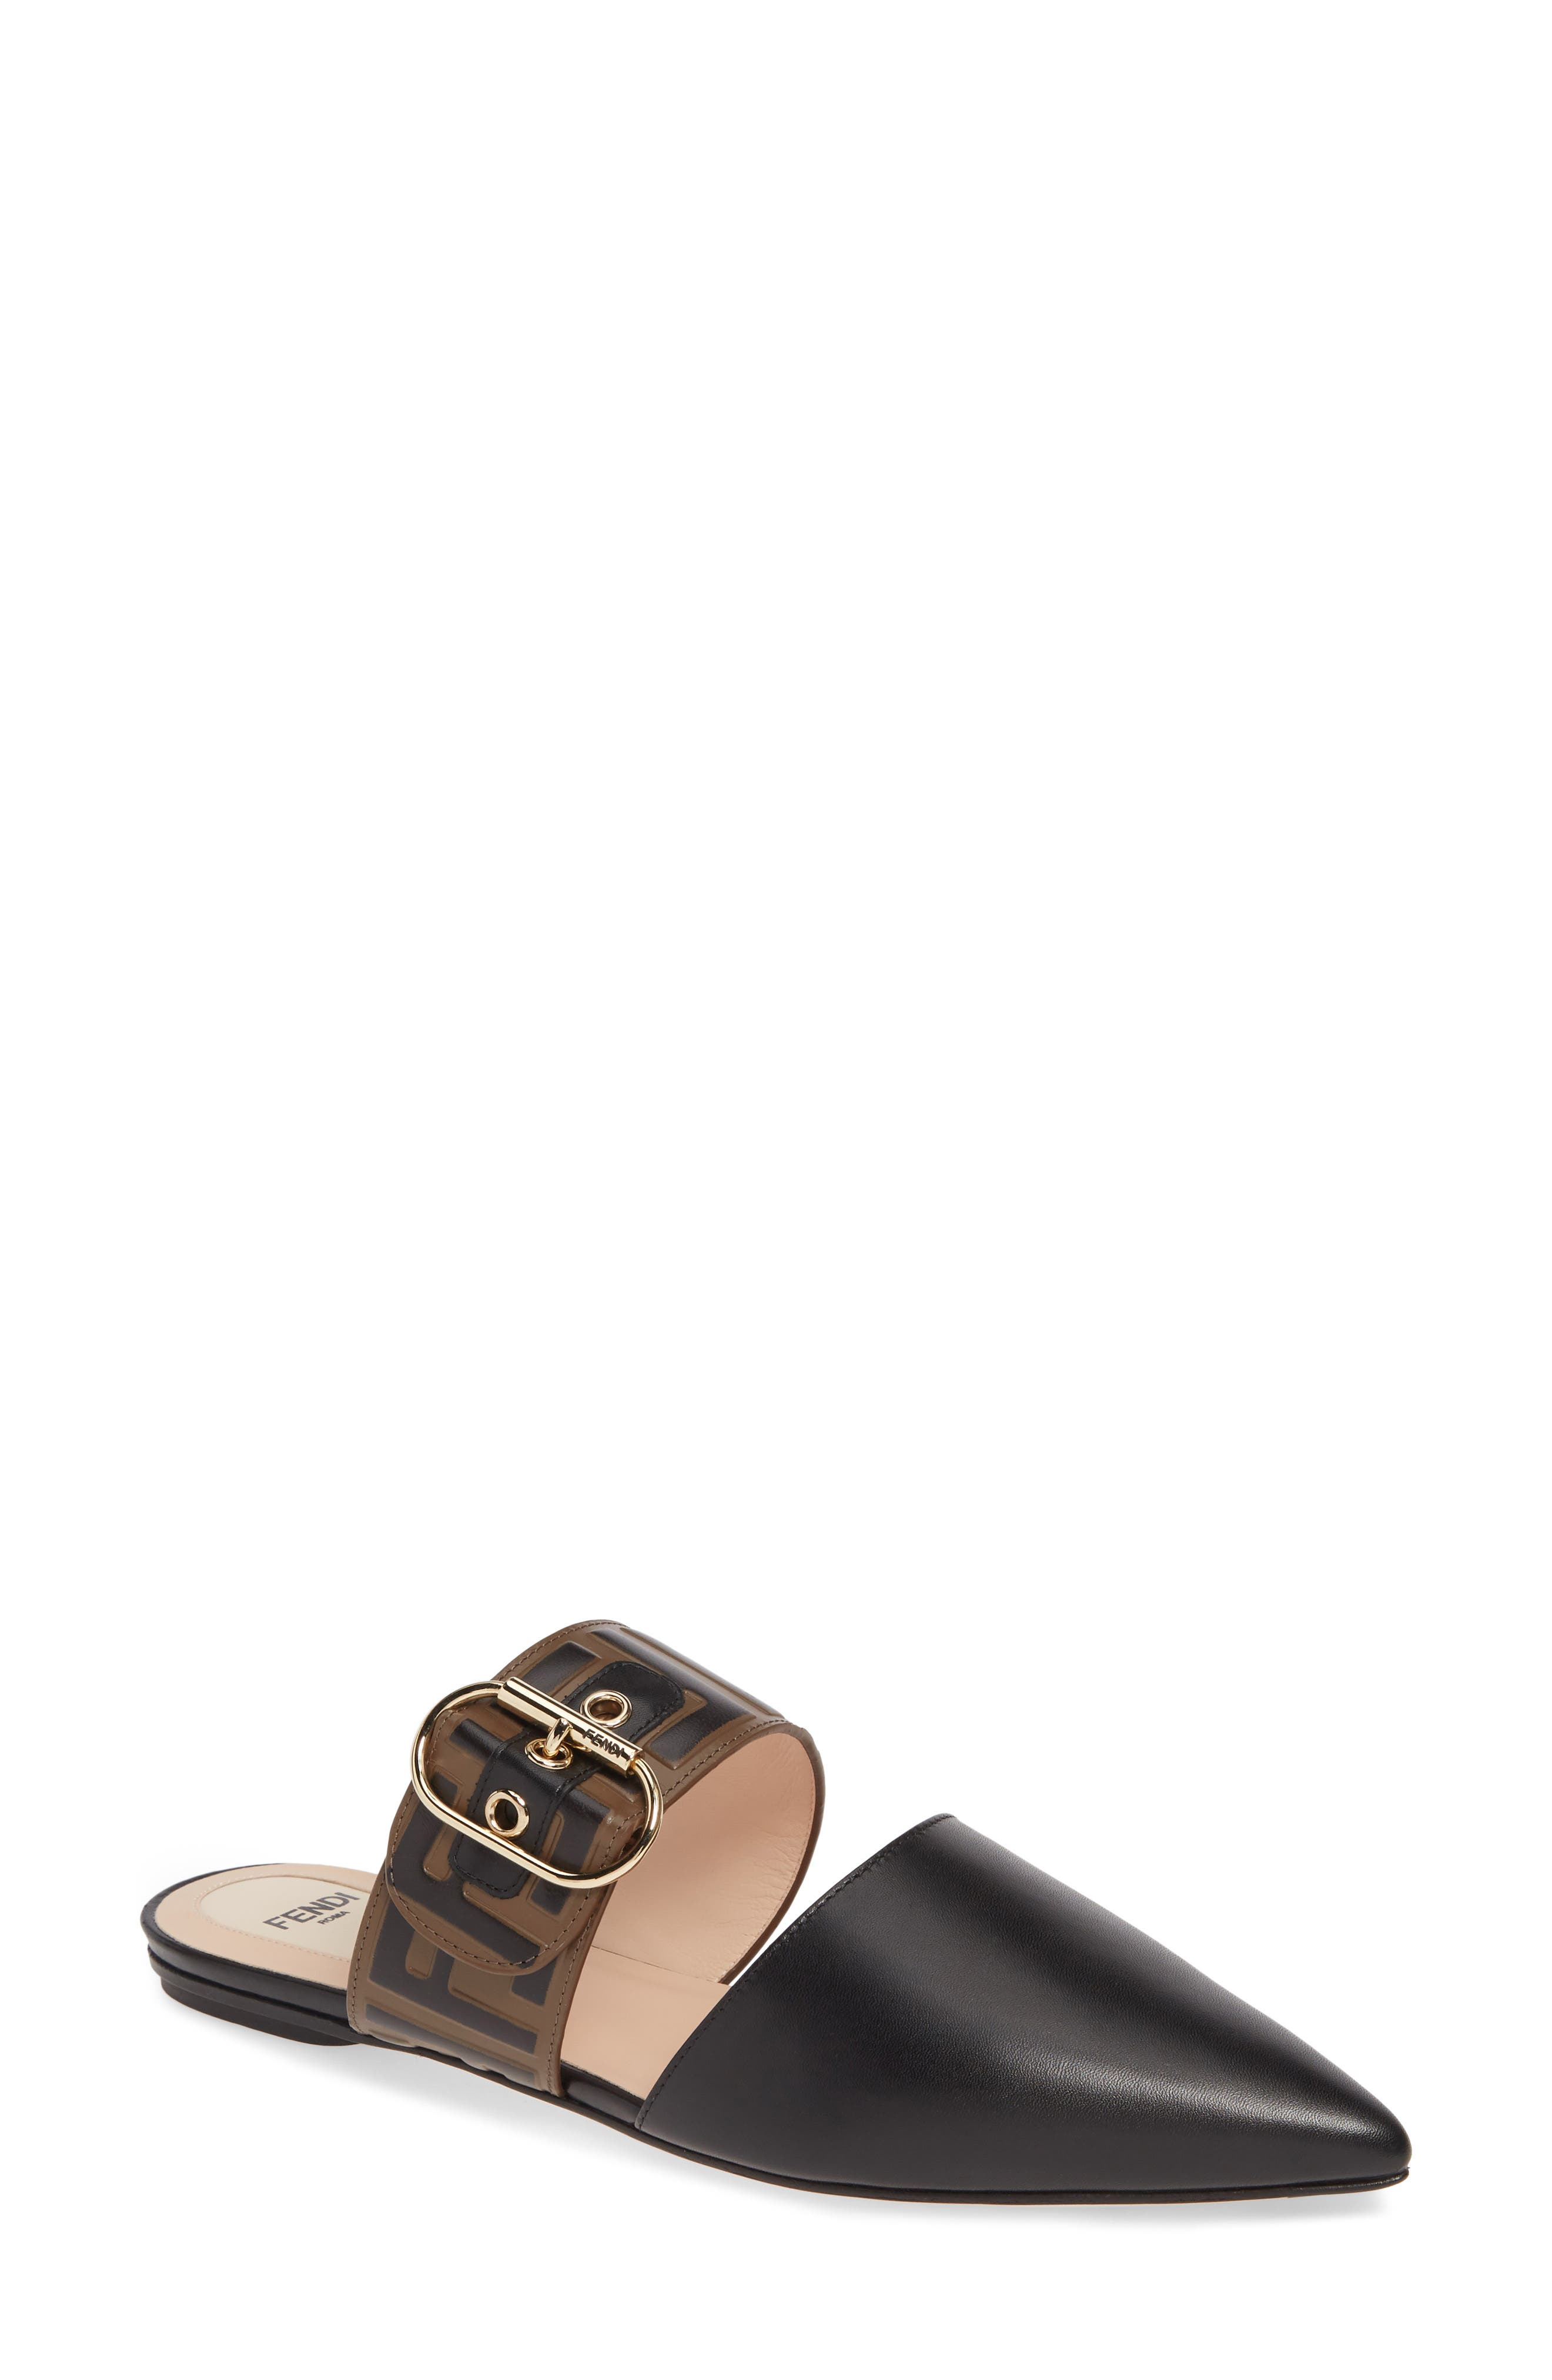 Pre-order this style today! Add to Shopping Bag to view approximate ship date. You\\\'ll be charged only when your item ships. Debossed logo detailing brings pattern and dimension to the buckle strap wrapping a two-part flat mule finished with a solid pointy toe. Style Name: Fendi Ff Buckle Mule (Women). Style Number: 5857735. Available in stores.